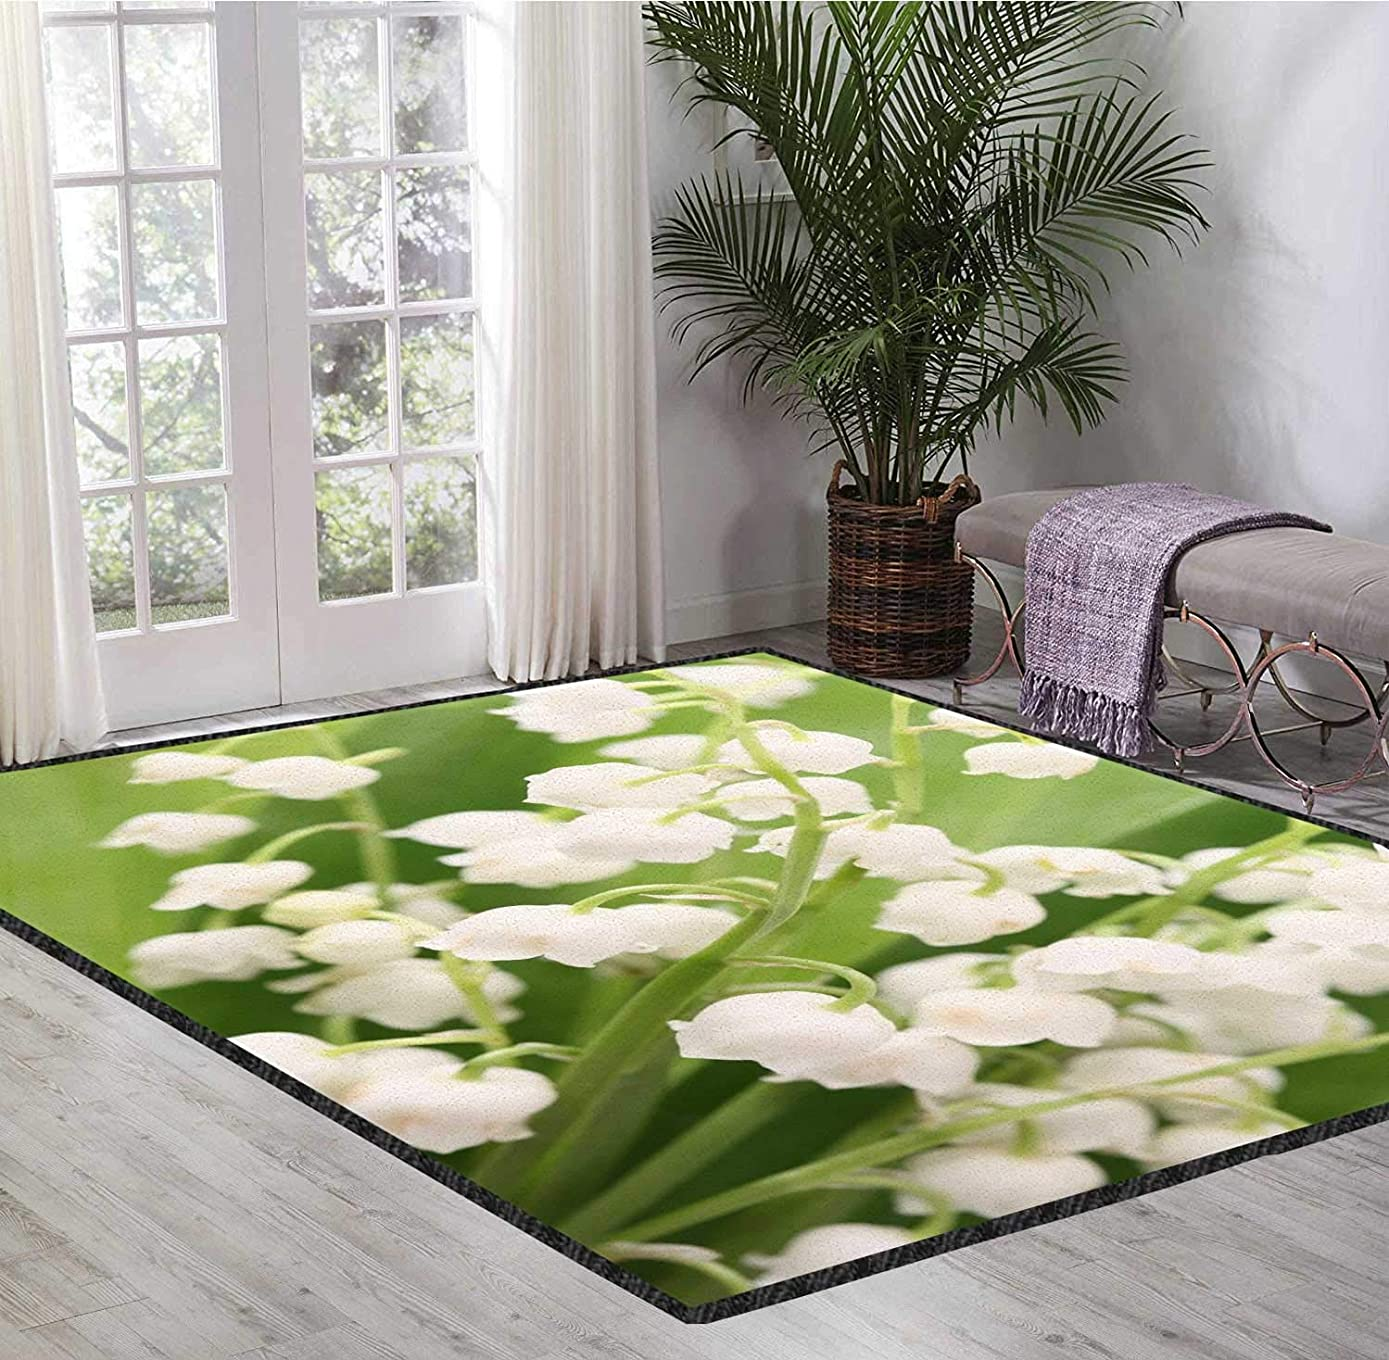 Throw Carpet Rugs Green Crystal Style Natural Safety Material Blue Sky and White Clouds Landscape Protect Your Horizons and Relax 4X6 Ft